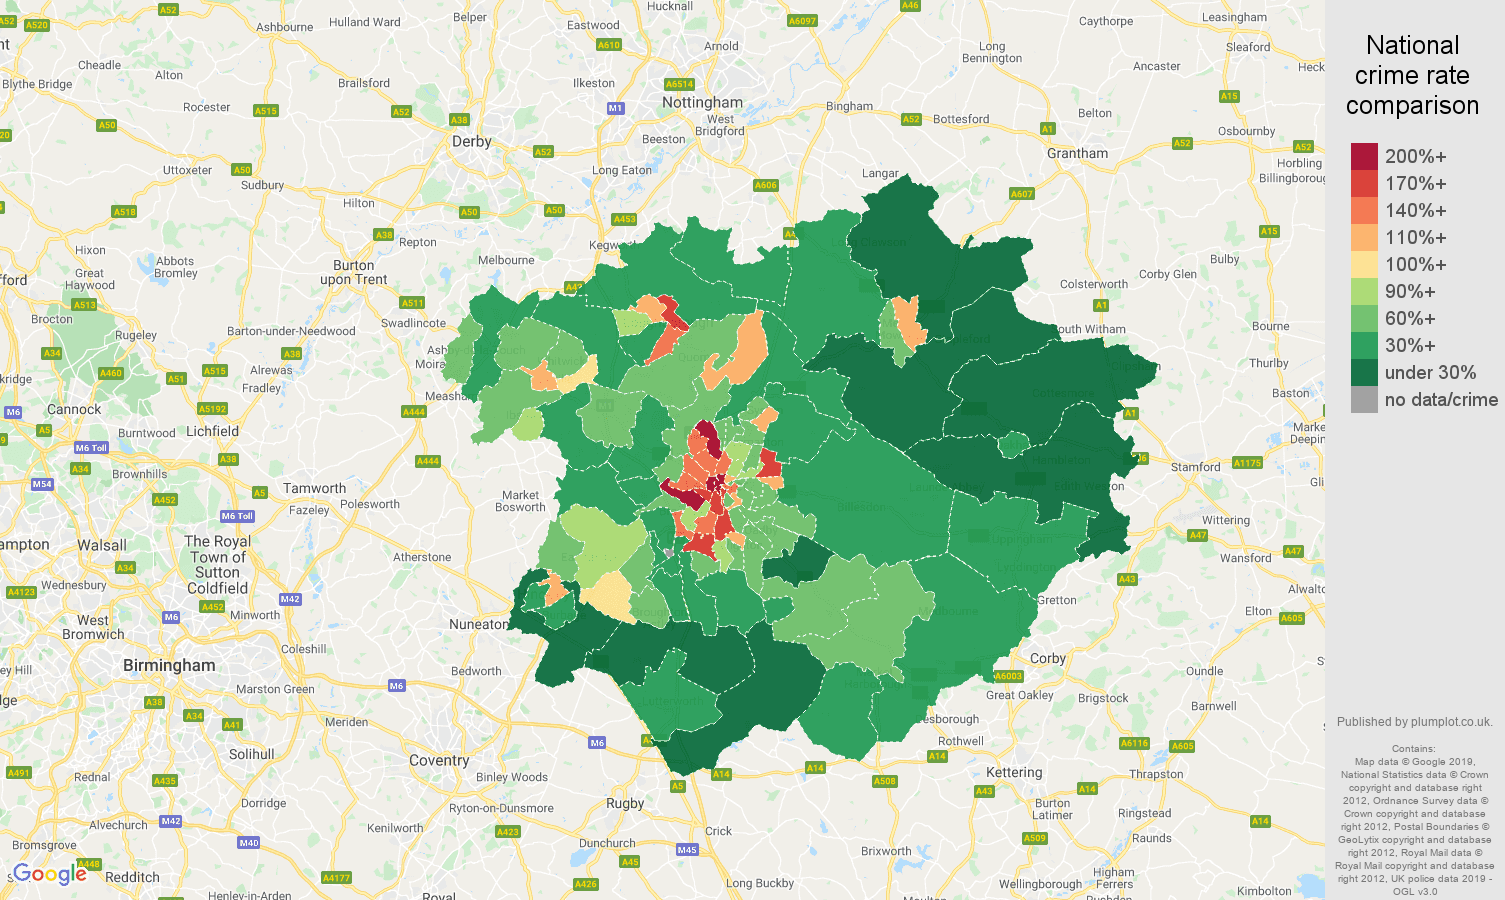 Leicester public order crime rate comparison map